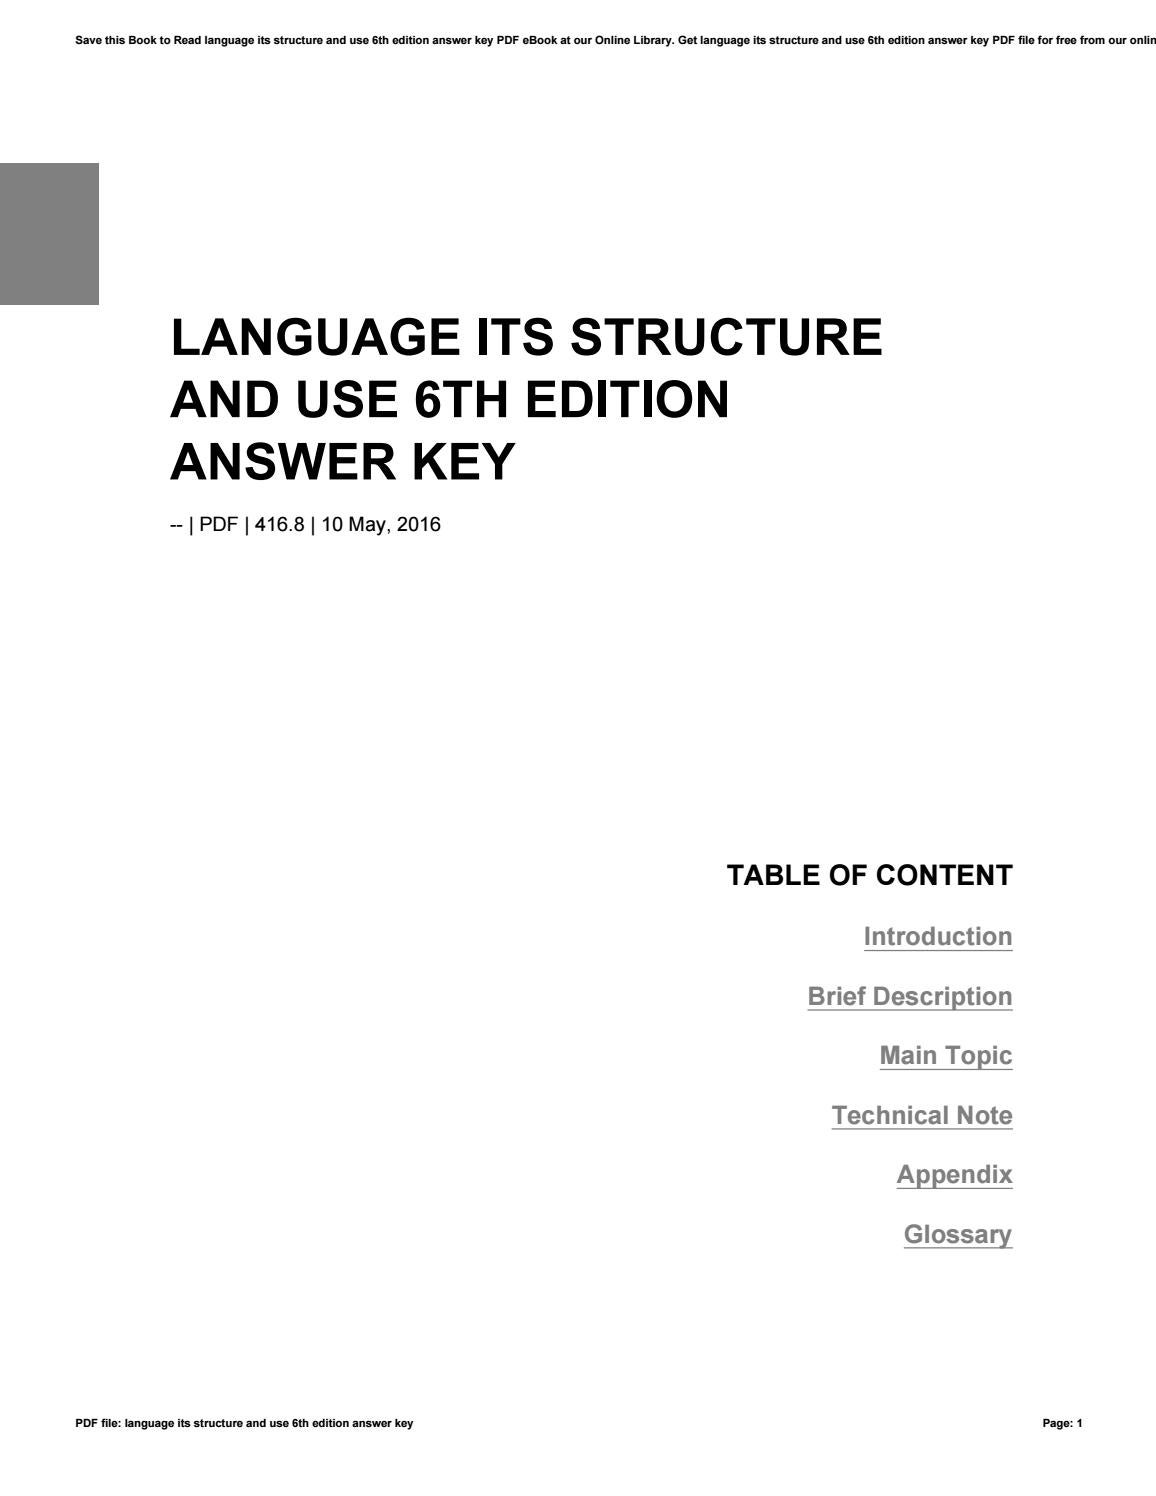 Language its structure and use 7th edition pdf